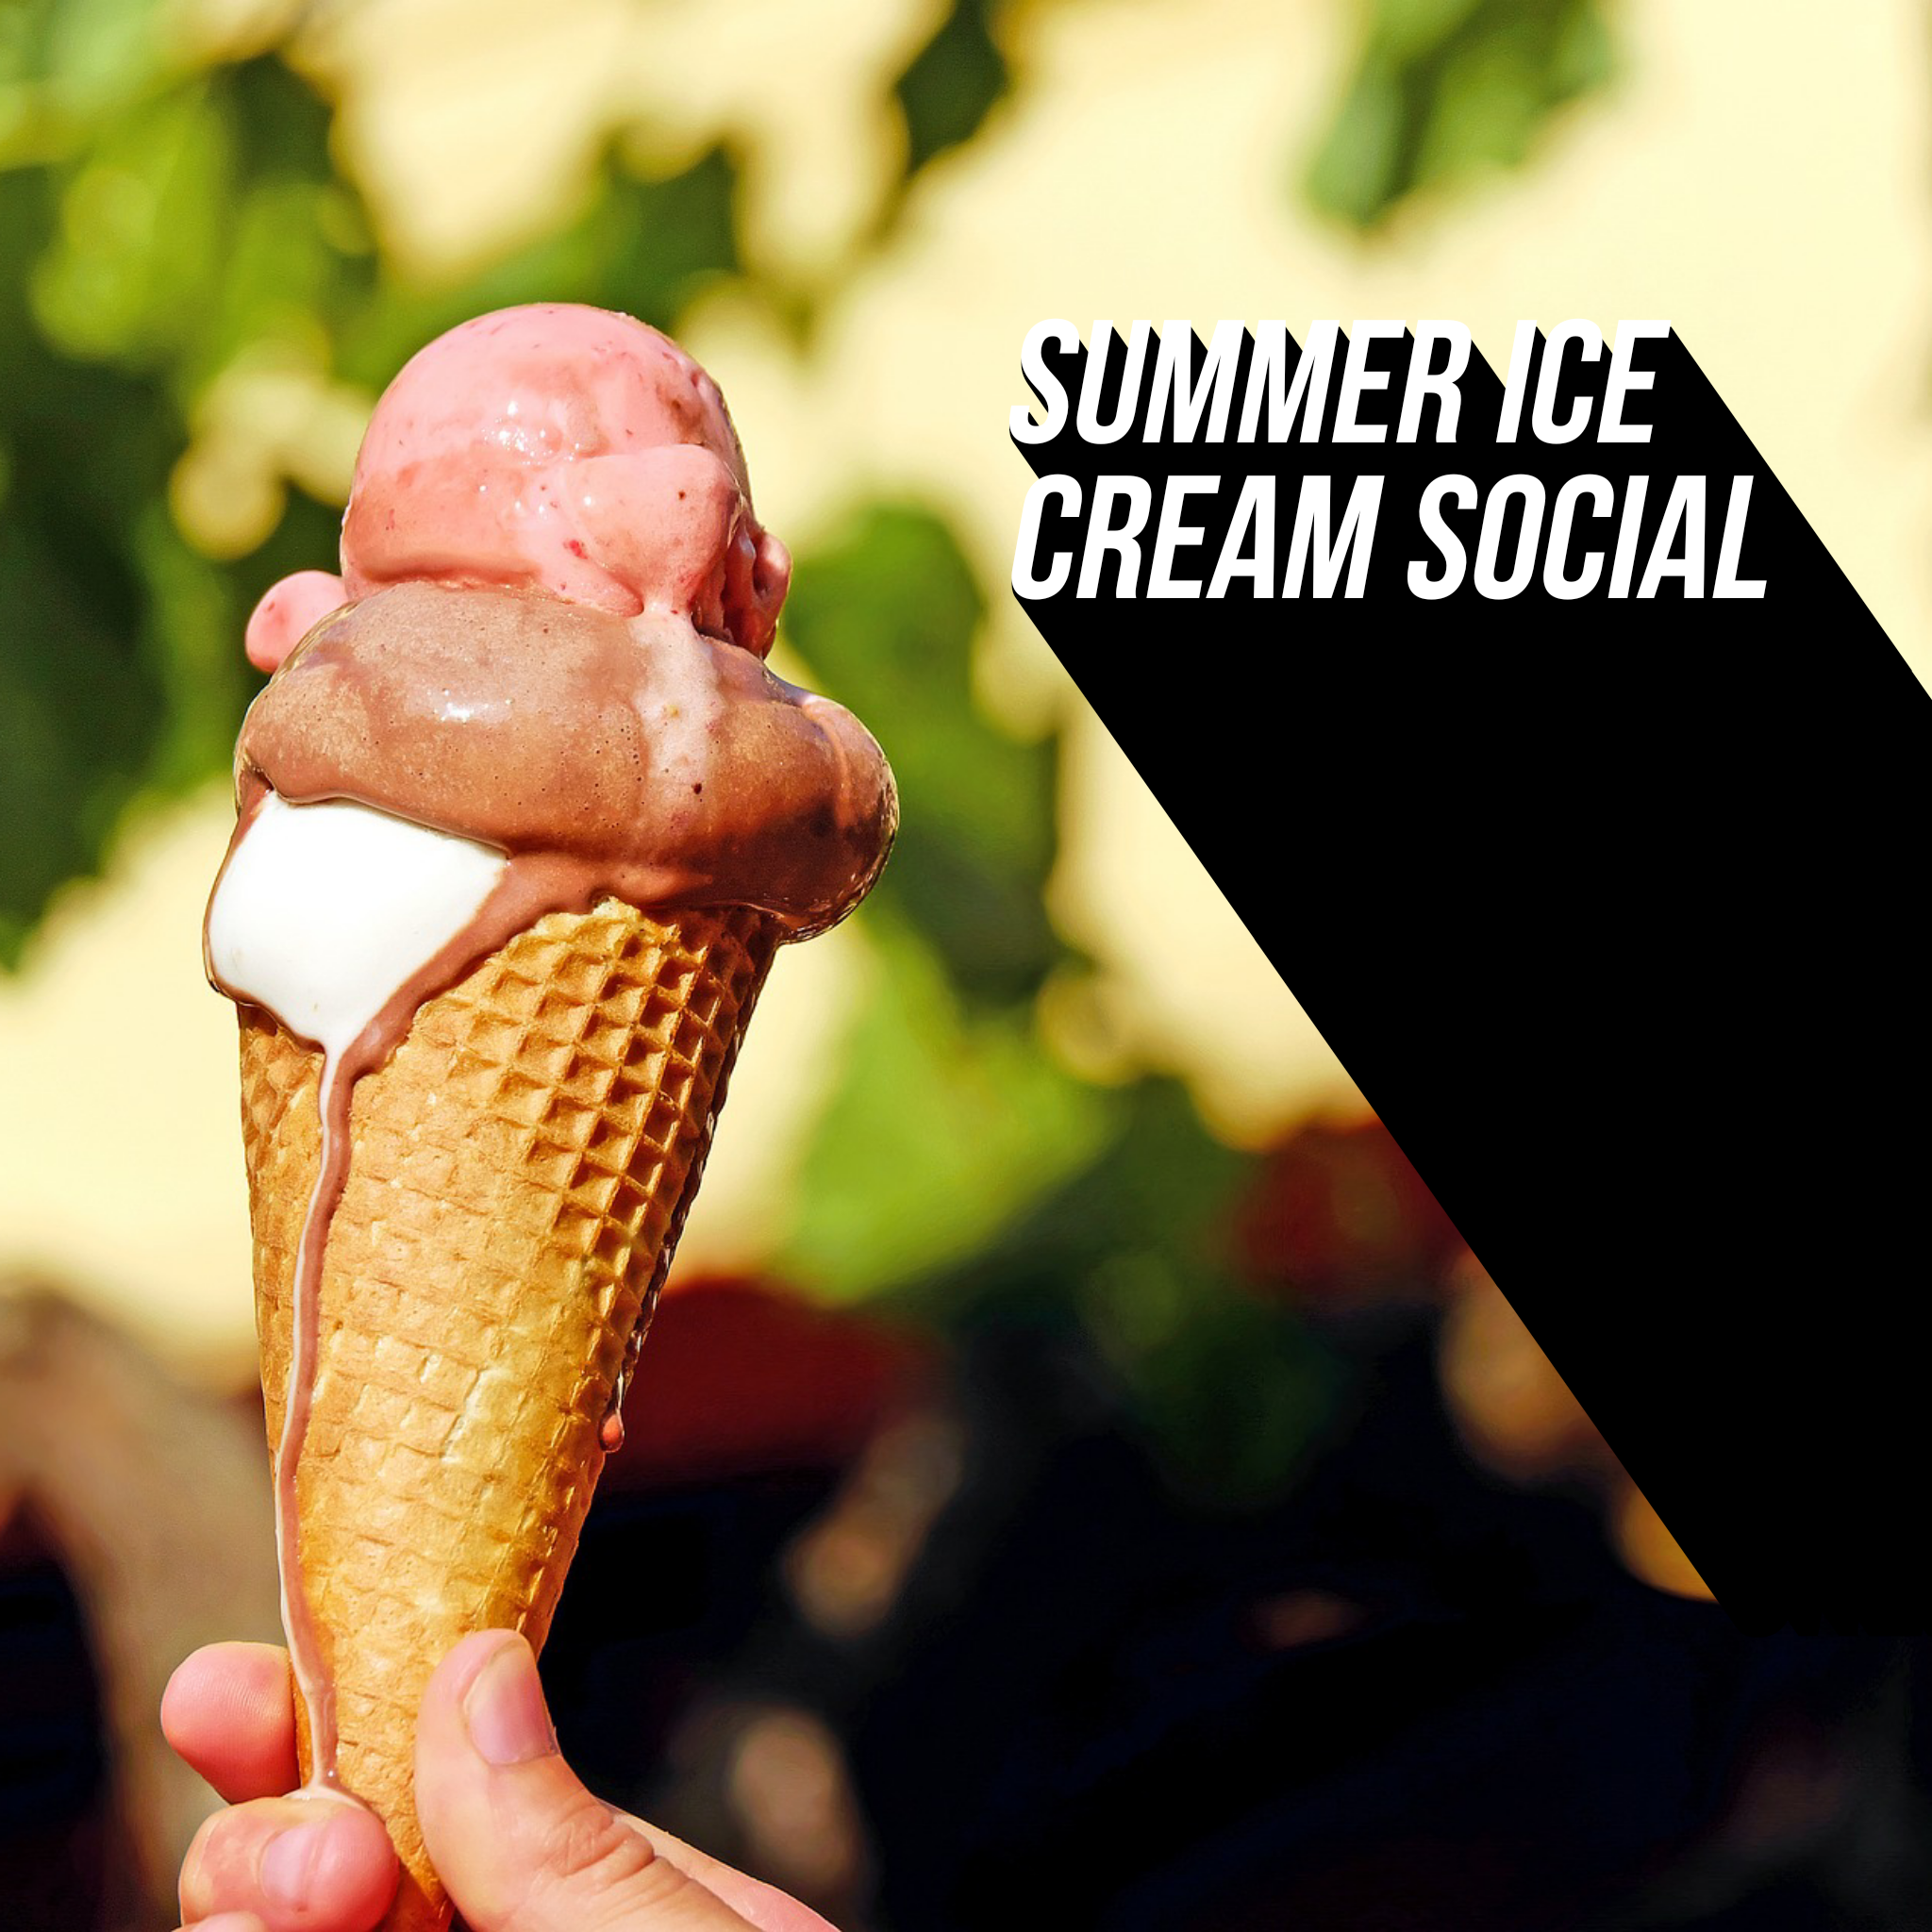 Summer Ice Cream Social